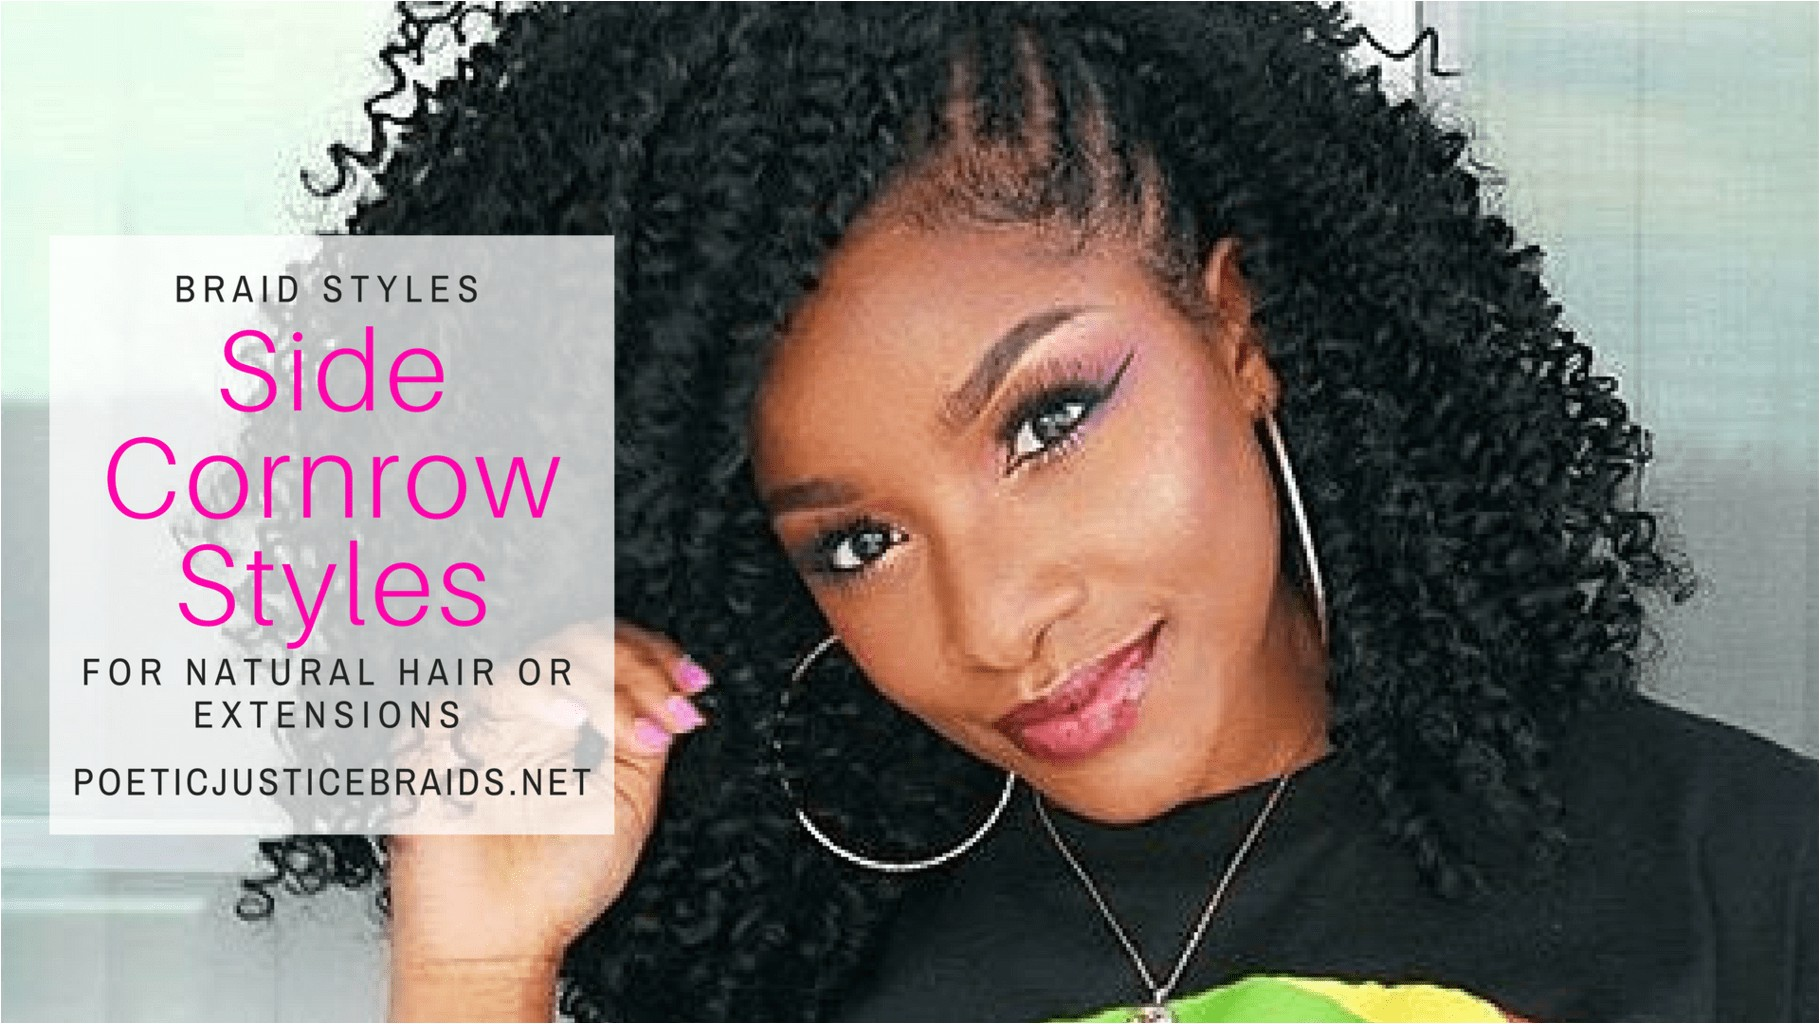 Cornrow styles have been around for decades and have always added flare and pizzazz to the scalp Intricate designs you can create with them